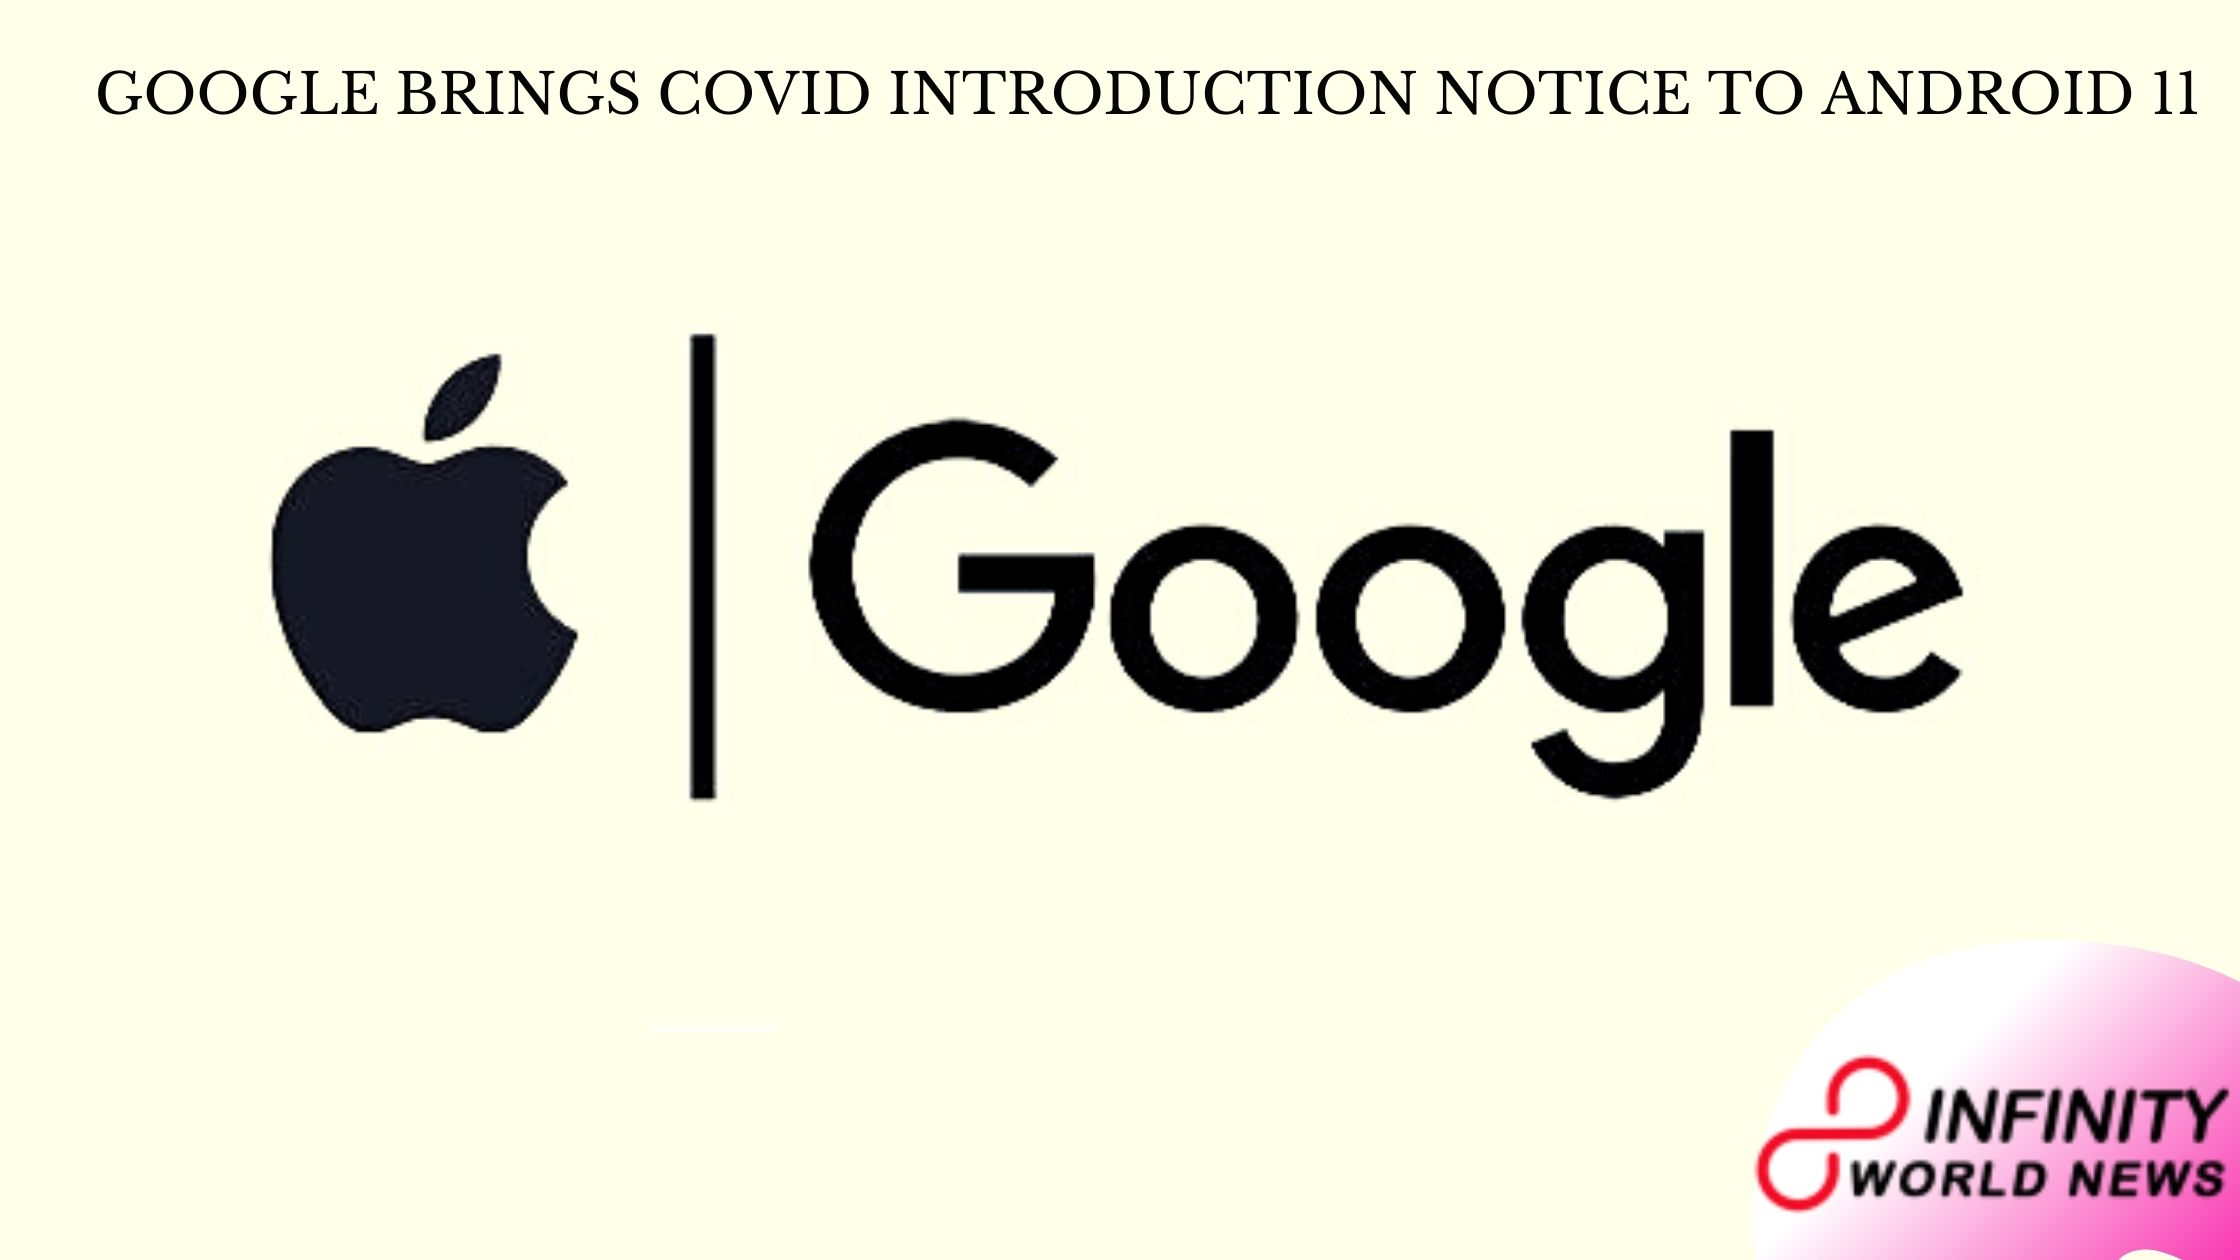 Google brings COVID introduction notice to Android 11